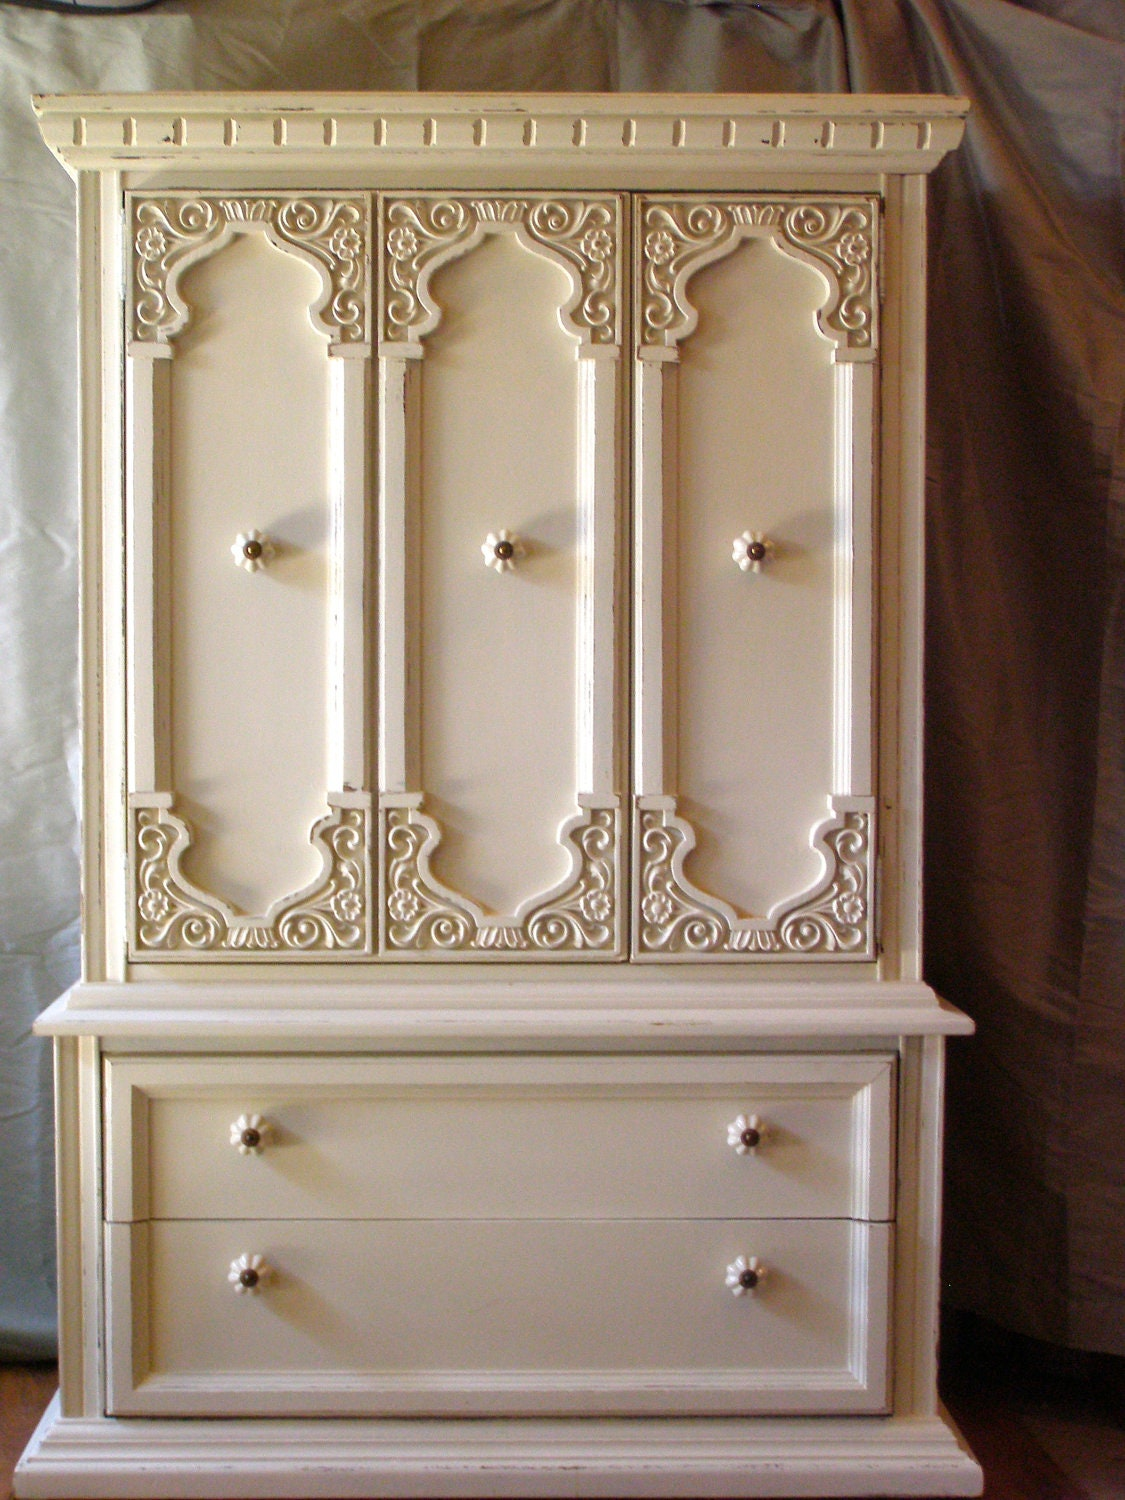 Annie sloan off white chalk paint armoire by tweakandstyle for Chalk paint comparable to annie sloan